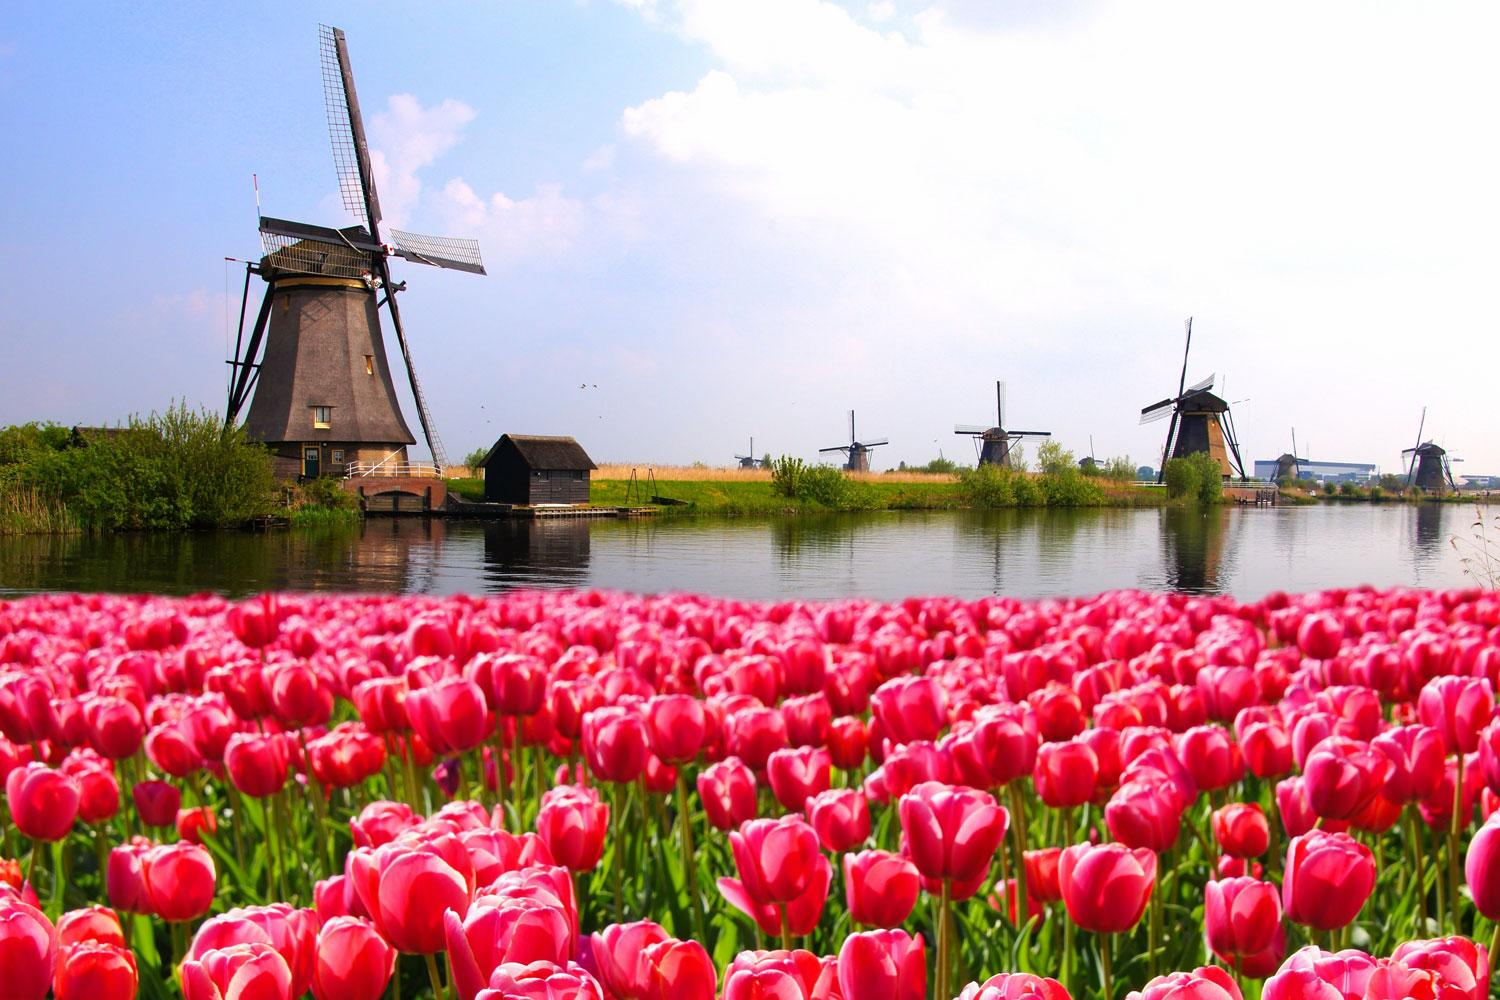 Glorious and vibrant tulips blooming at Kinderdijk